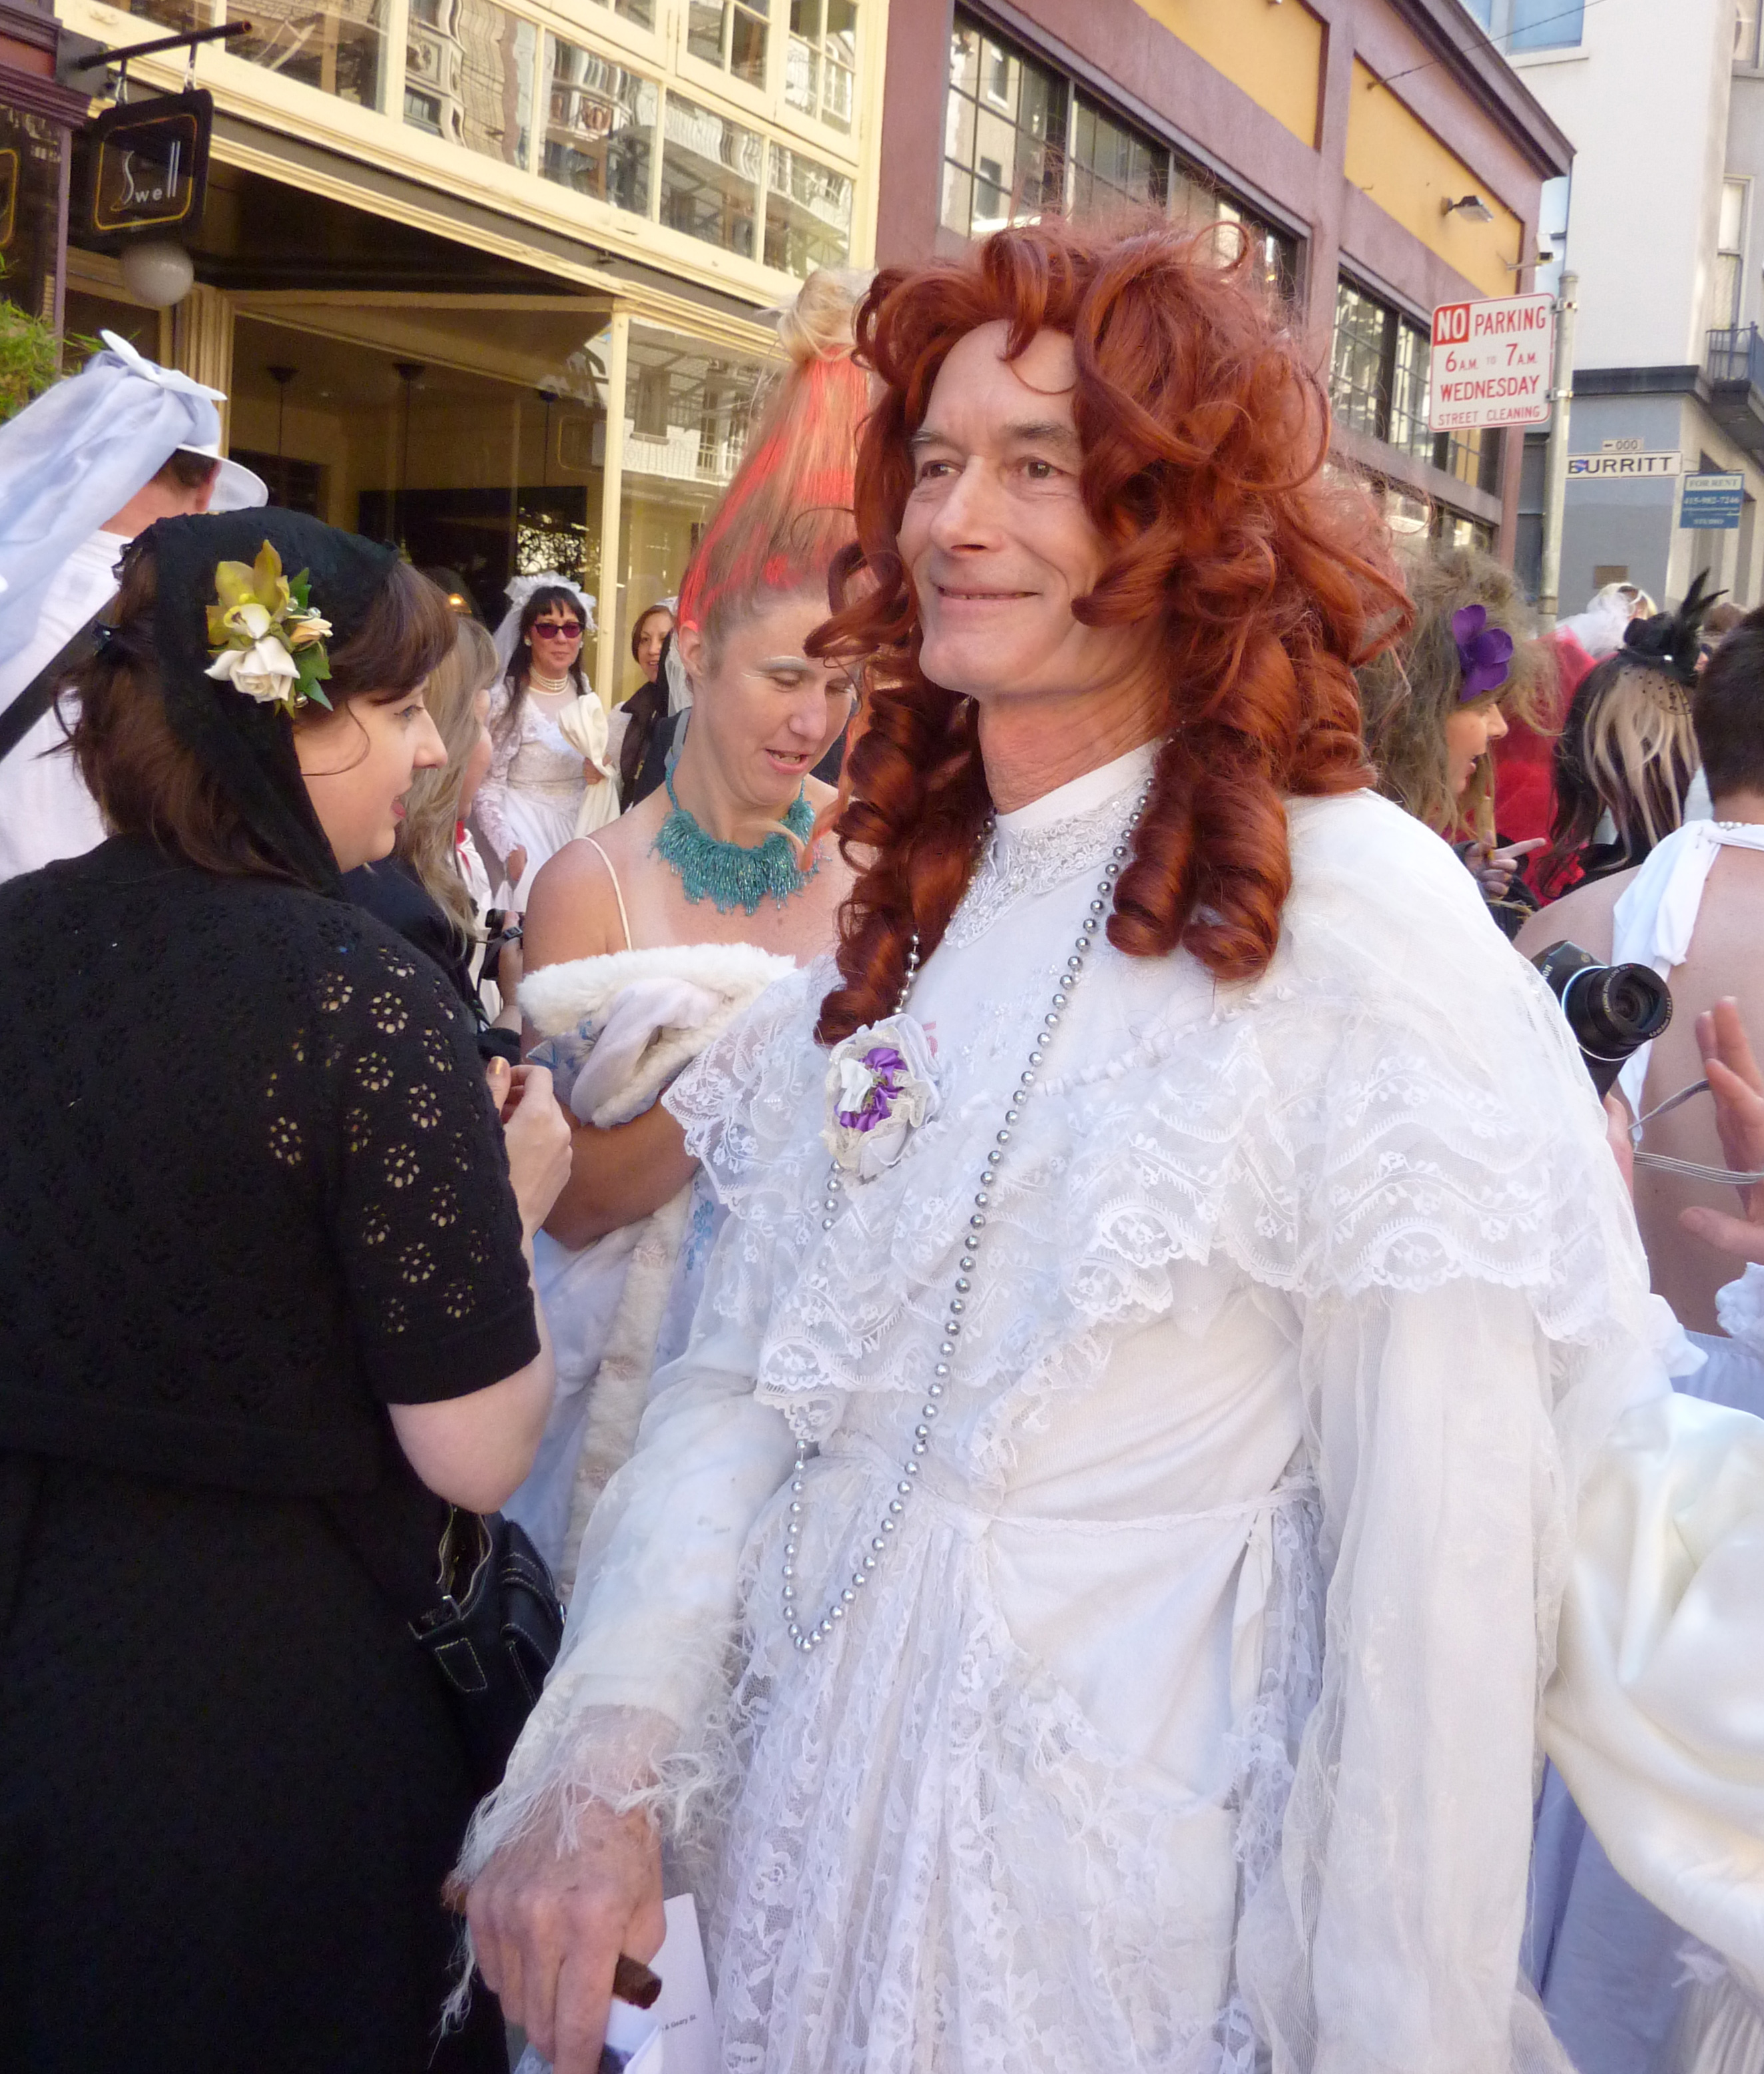 SF peeps: Paint the town white with the 'Brides of March'